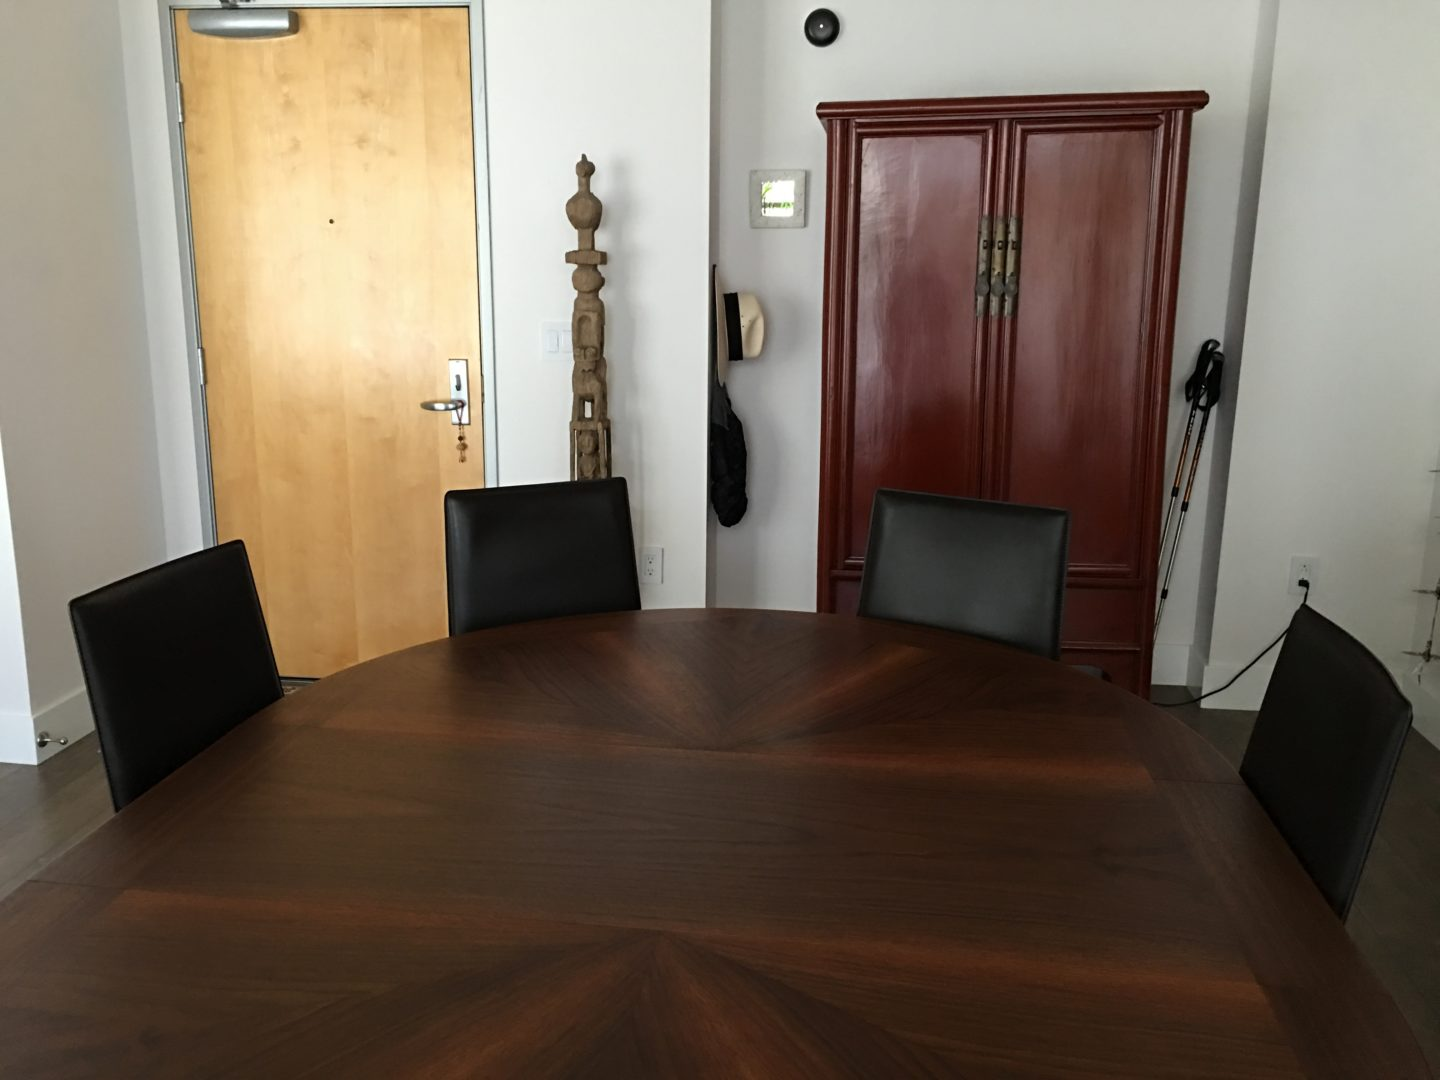 A dining table in a living room